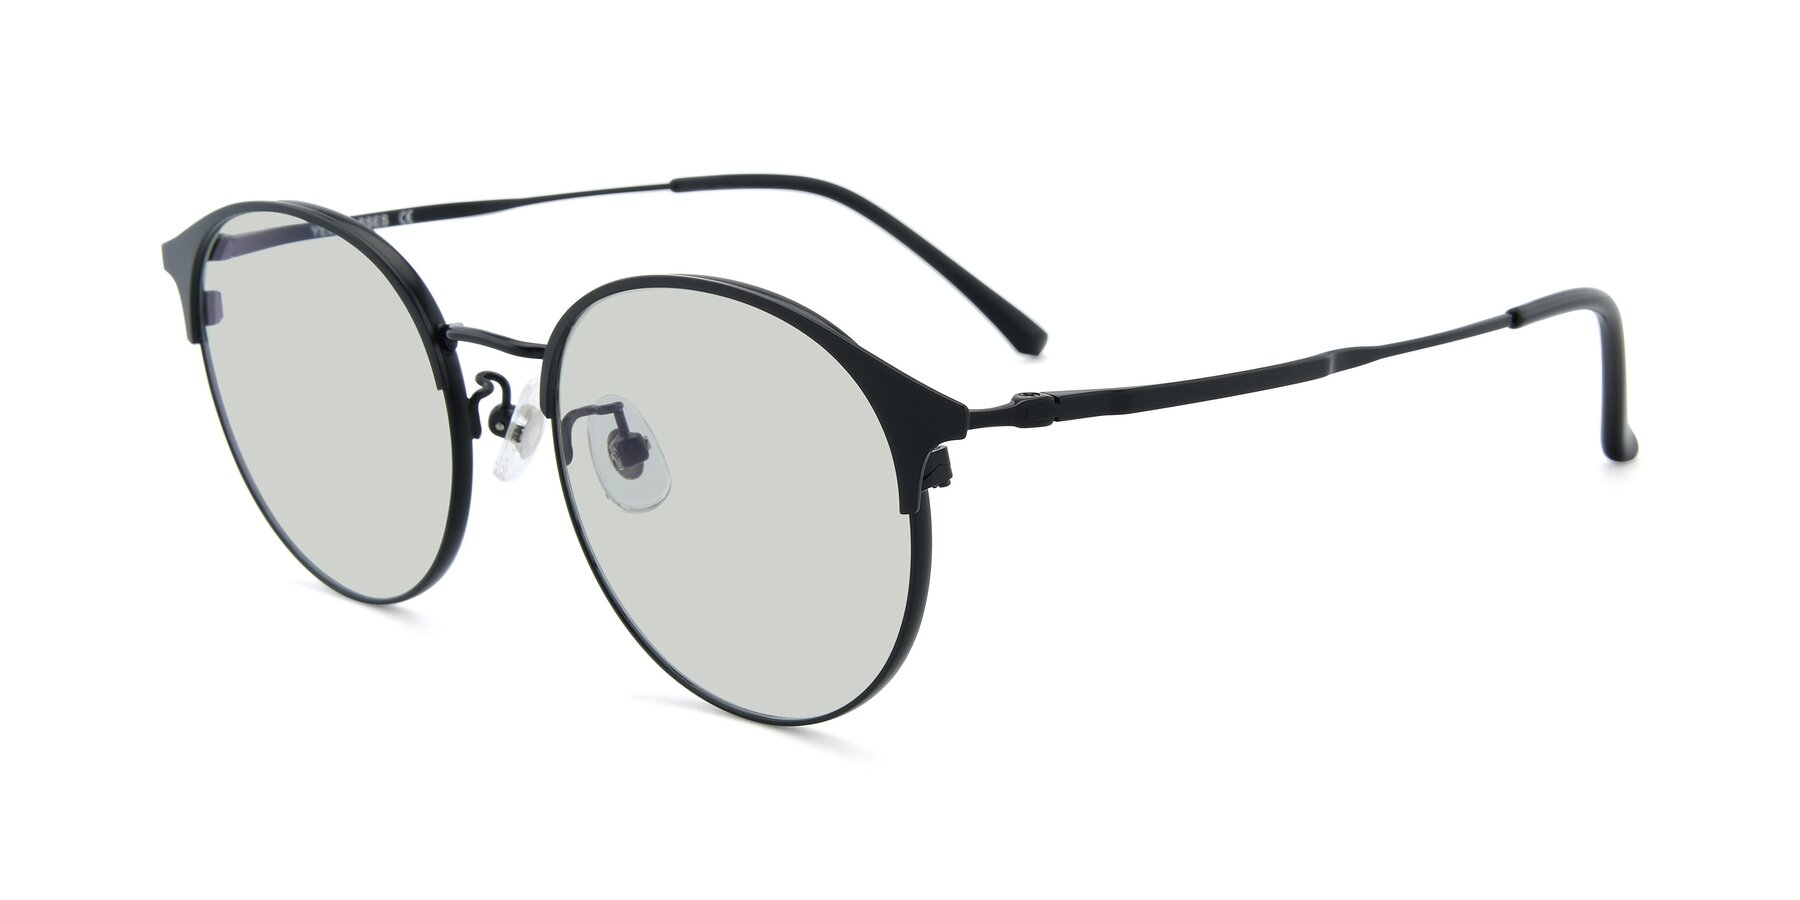 Angle of XC-8031 in Matte Black with Light Green Tinted Lenses